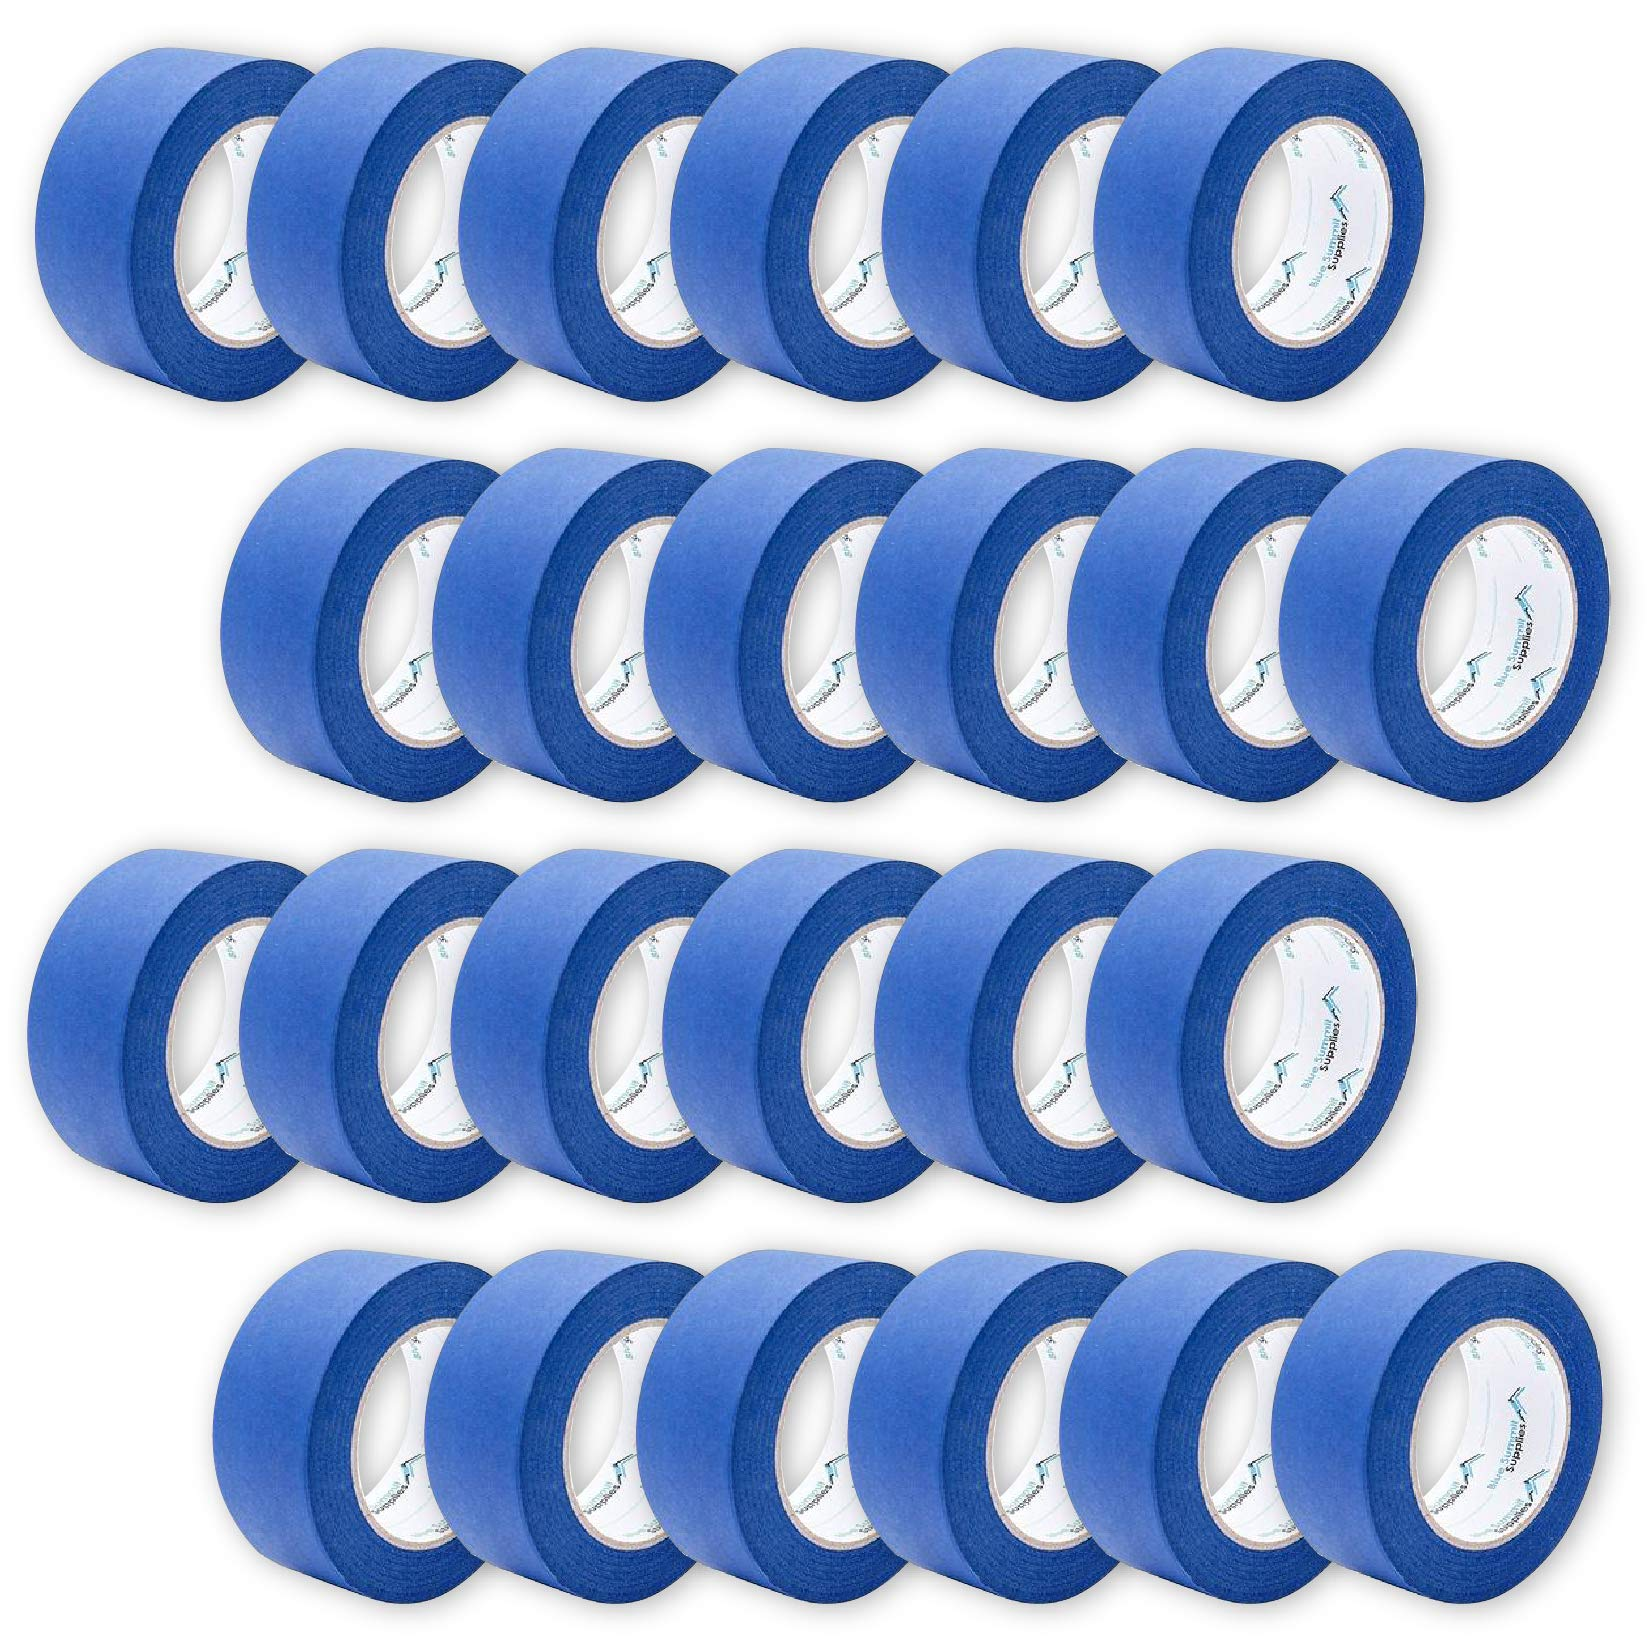 24 Pack 1.88 Inch Blue Painters Tape, Medium Adhesive That Sticks Well but Leaves No Residue Behind, 60 Yards Length, 24 Rolls, 1440 Total Yards by Blue Summit Supplies